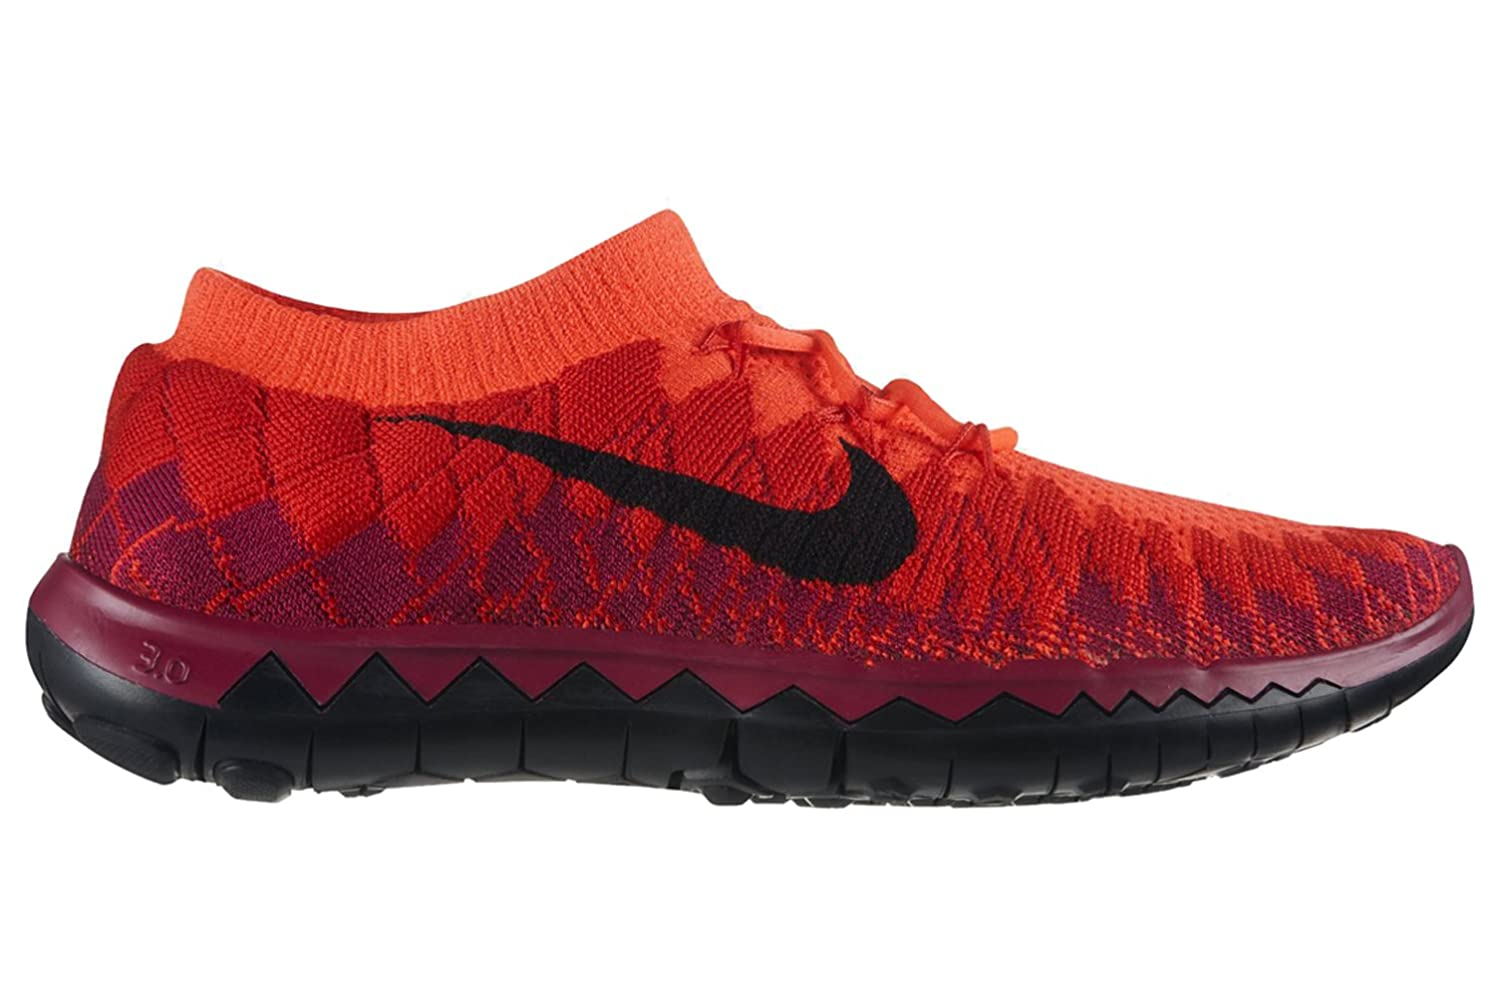 new product a54c5 84714 Nike Women s WMNS Free Flyknit 3.0, BRIGHTCRIMSON Black-University RED-RSP,  7.5 M US  Amazon.ca  Sports   Outdoors